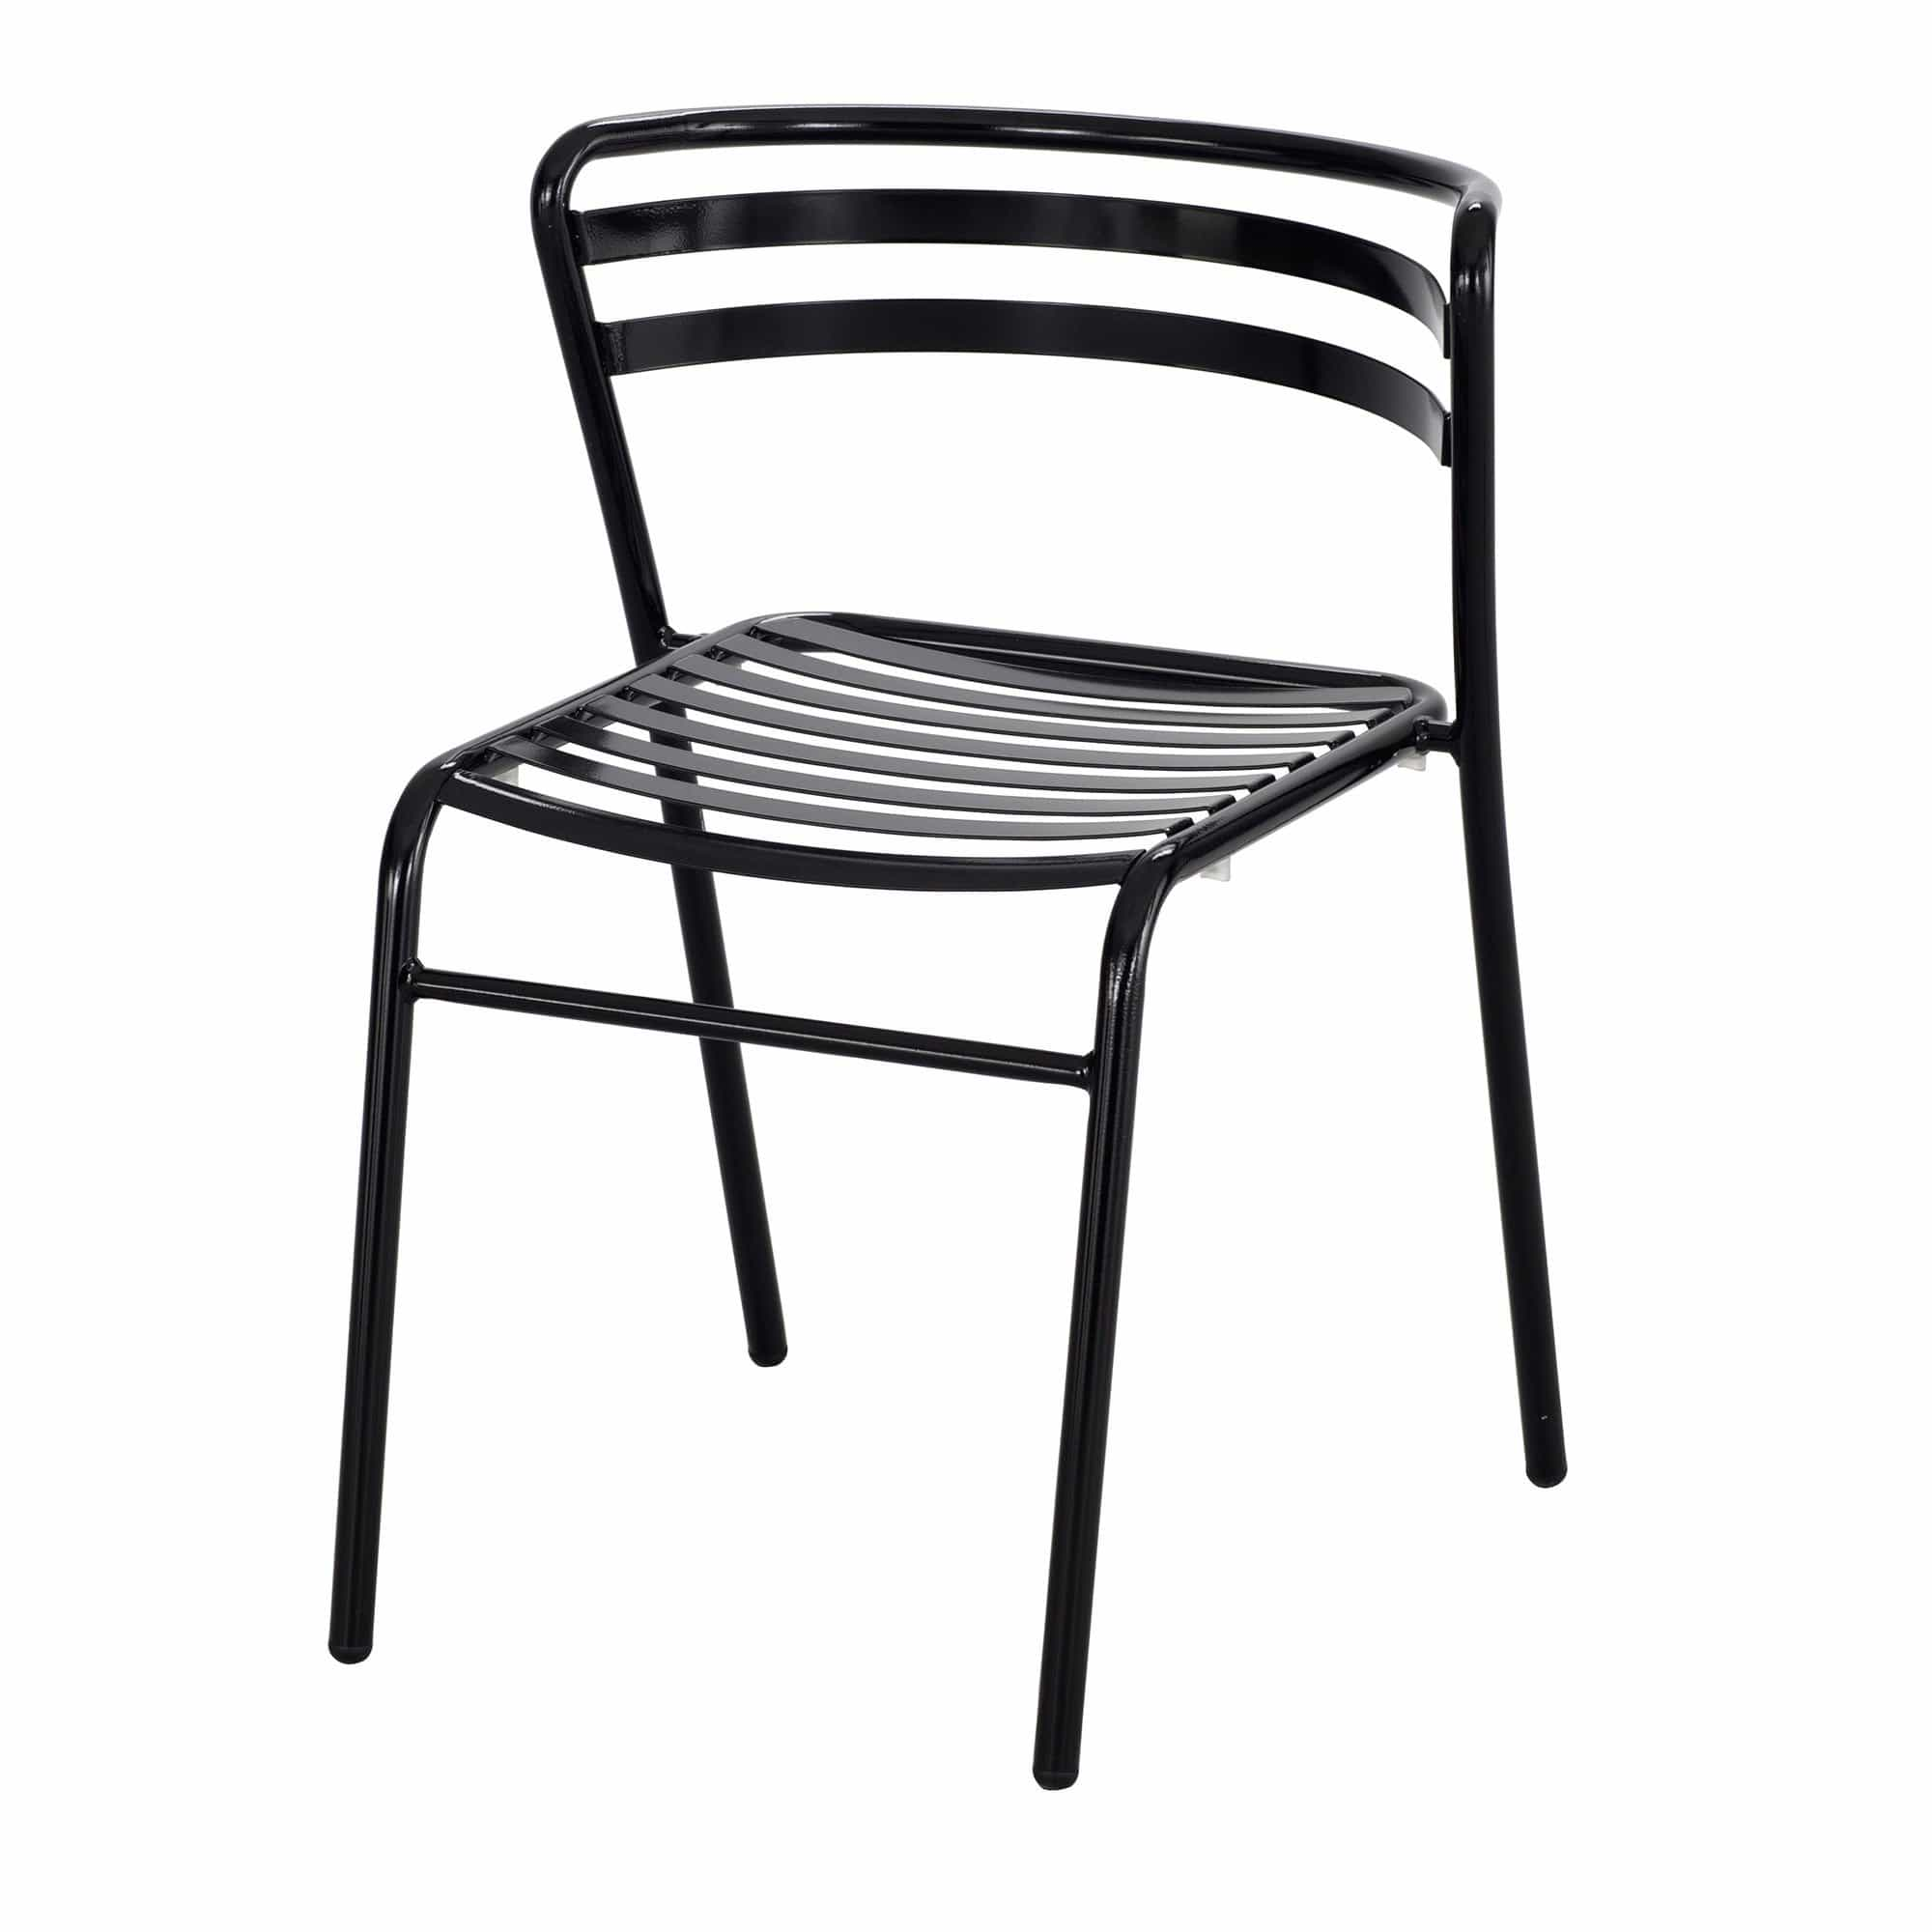 bedinhome - 4360BL CoGo™ Open Slat Design Multipurpose Curved Back Rest Tubular Steel Outdoor/Indoor Durable Black Stack Chair (Qty. 2) - Safco - Stack Chair